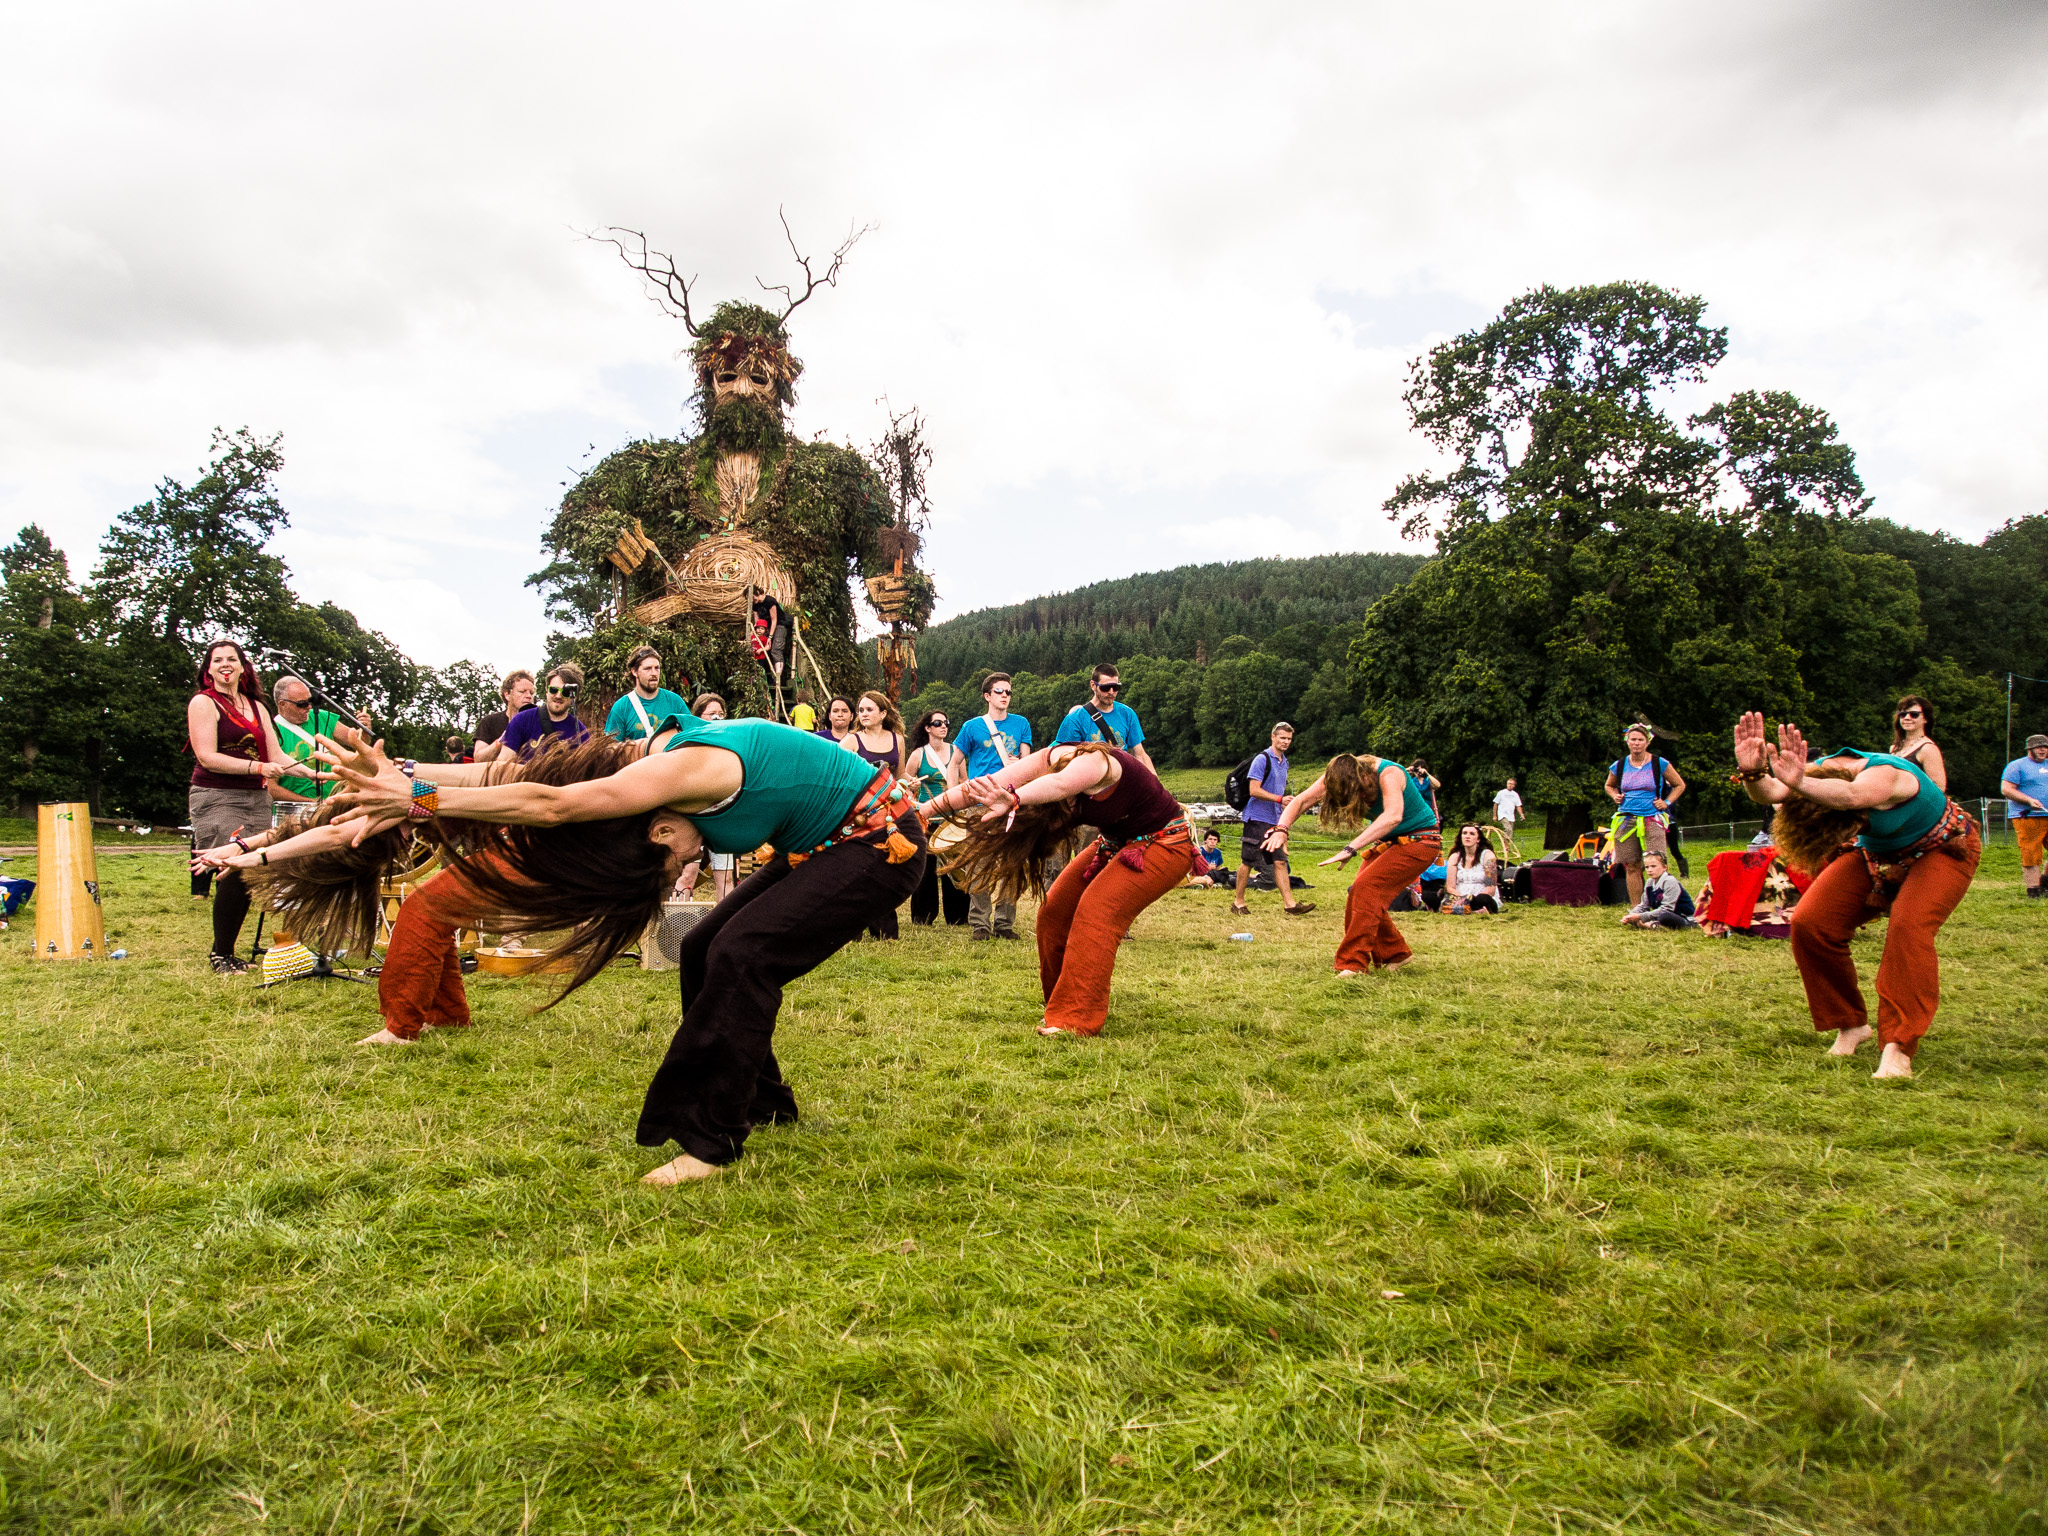 Green Man Festival 2013 - photo by James Barber